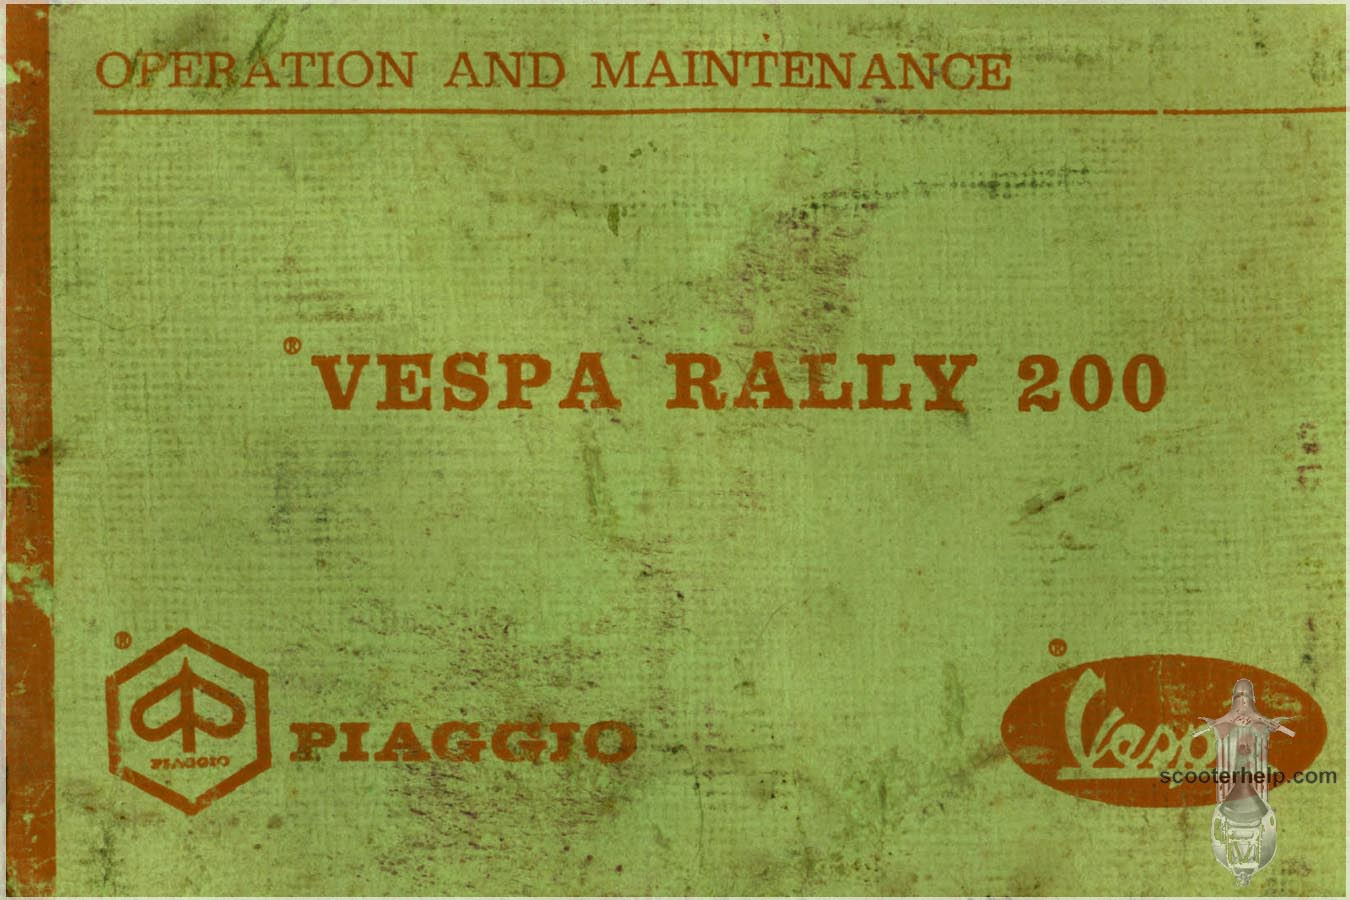 Vespa Rally 200 Owner's Manual on